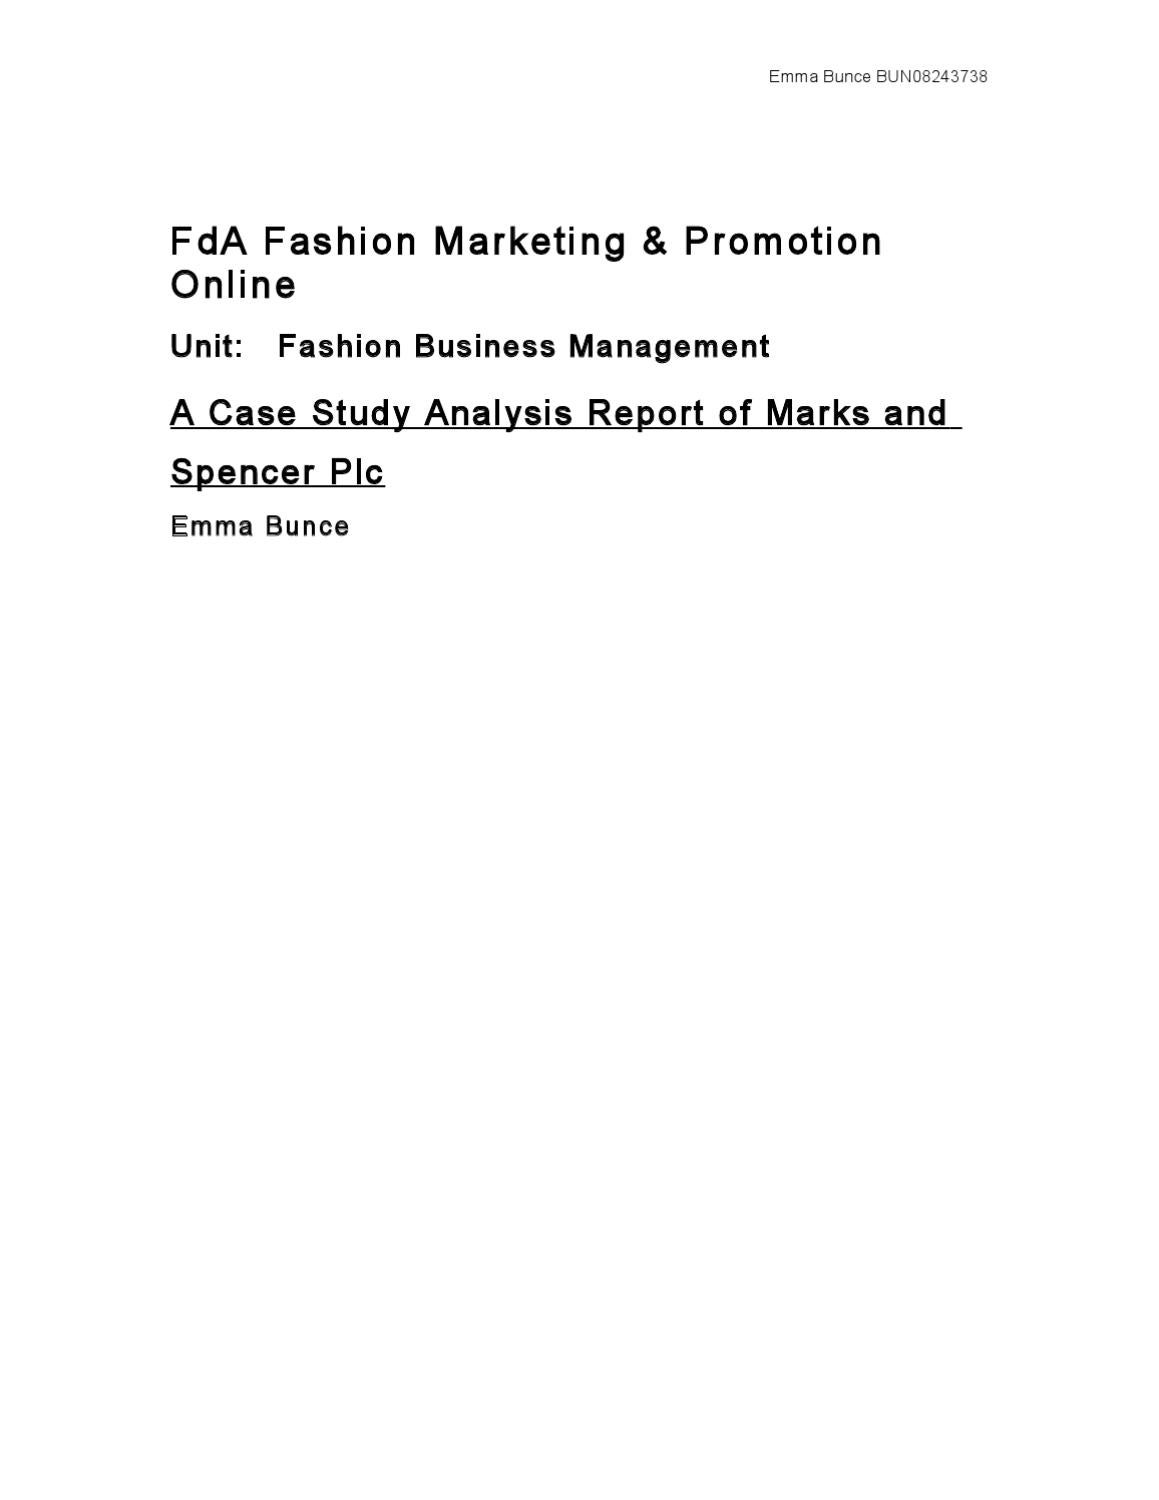 A Case Study Analysis Report of Marks and Spencer Plc by Emma Bunce ...